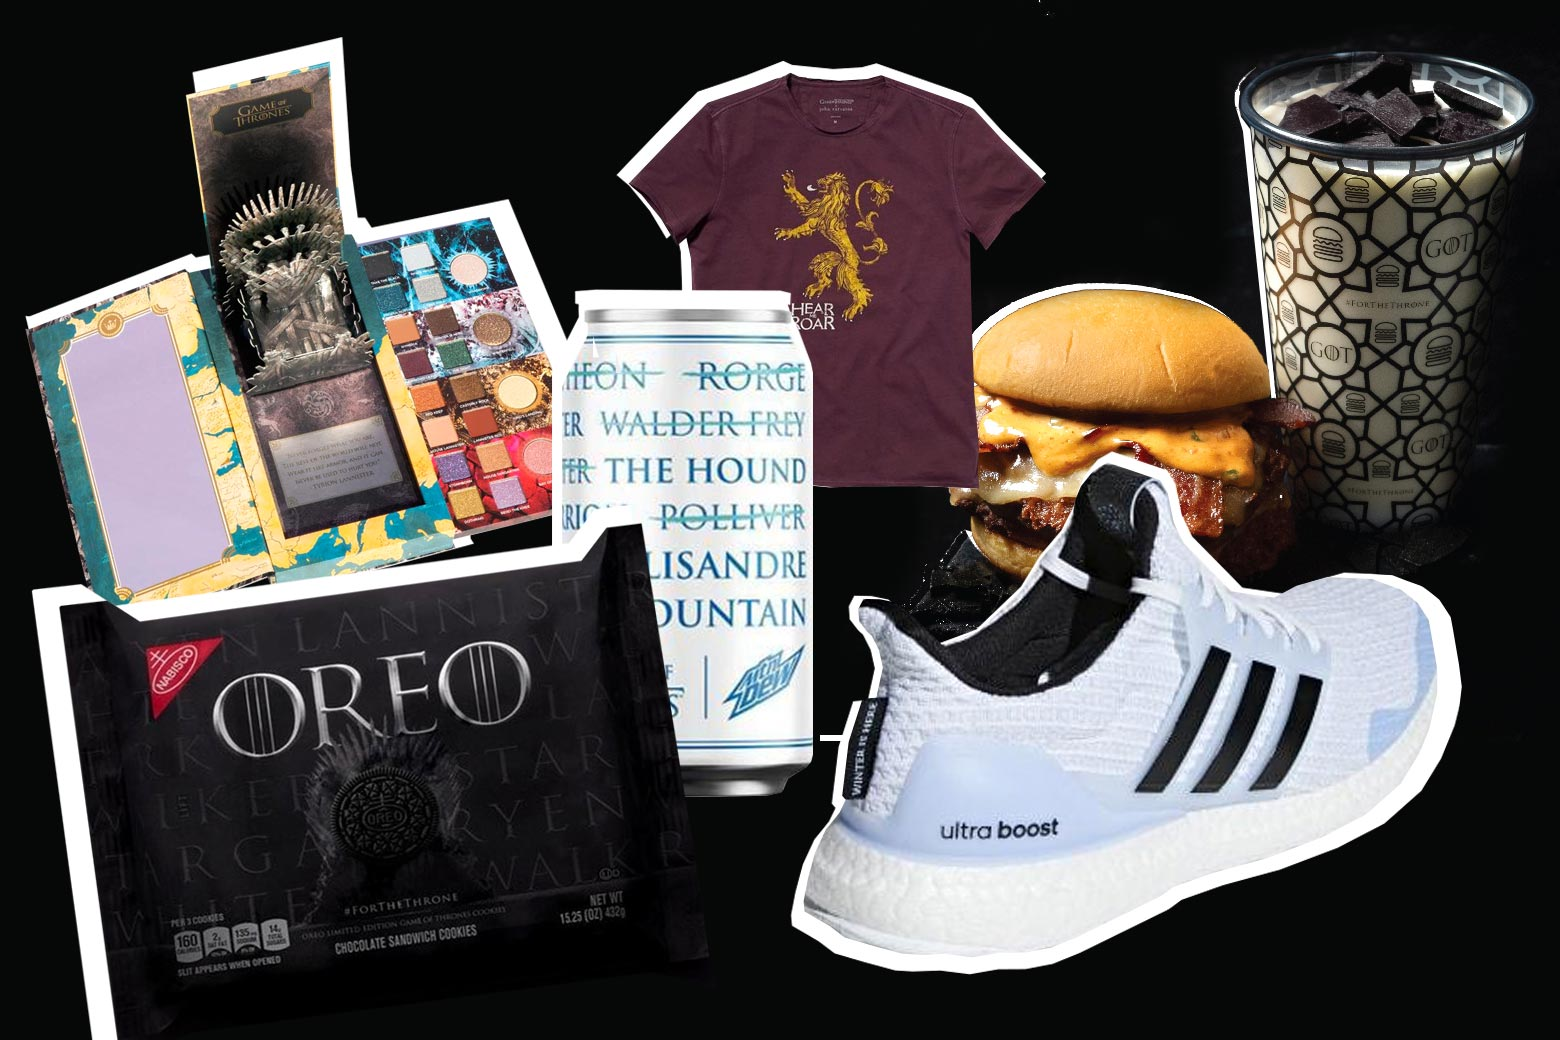 Game of Thrones Oreos, Game of Thrones makeup, Game of Thrones sneakers, Game of Thrones Mountain Dew, Game of Thrones burgers, and more.